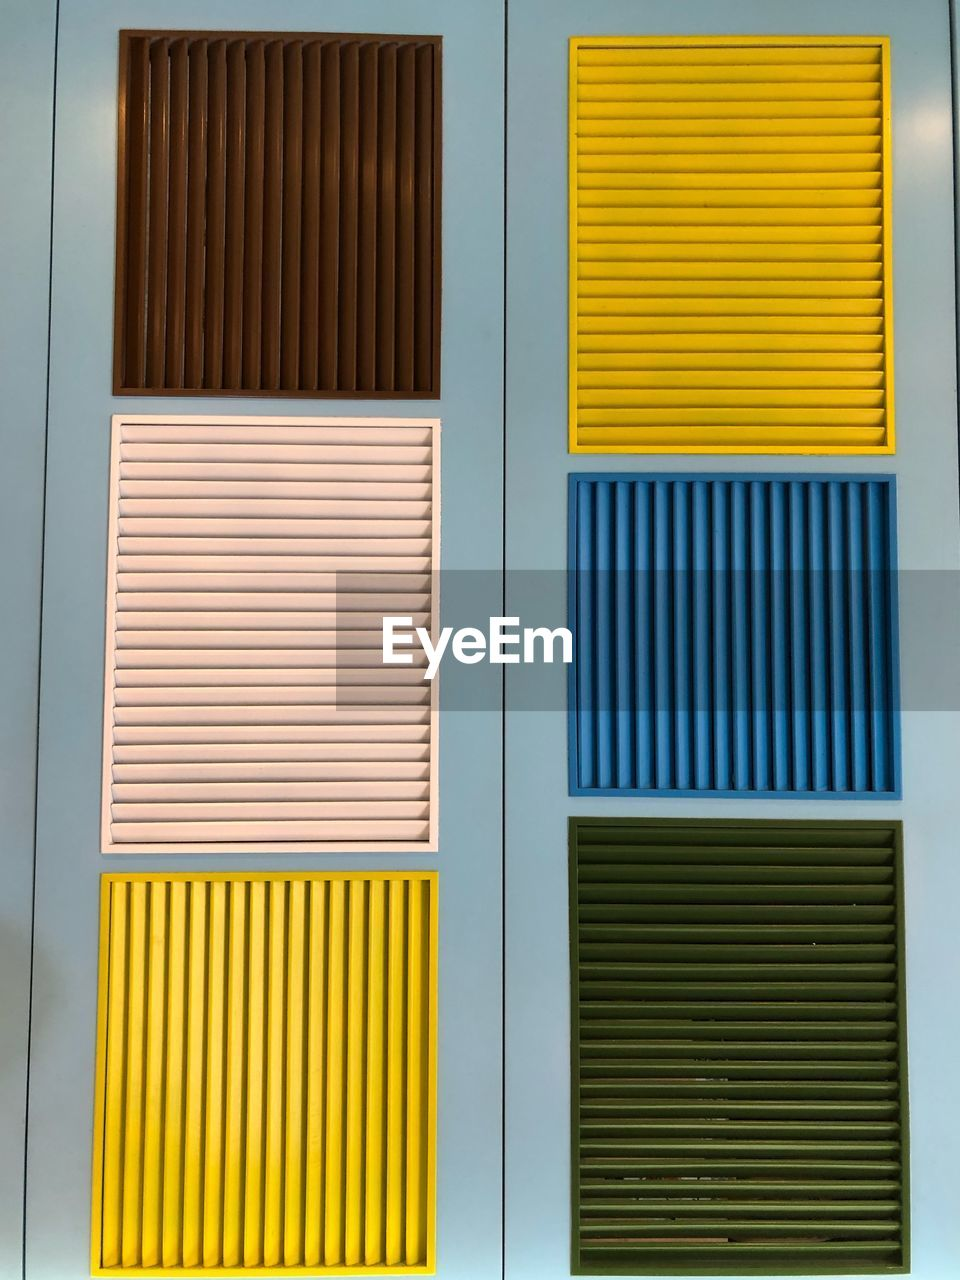 yellow, architecture, no people, built structure, pattern, building exterior, wall - building feature, window, closed, building, day, full frame, shutter, backgrounds, metal, corrugated iron, outdoors, striped, blinds, close-up, iron, corrugated